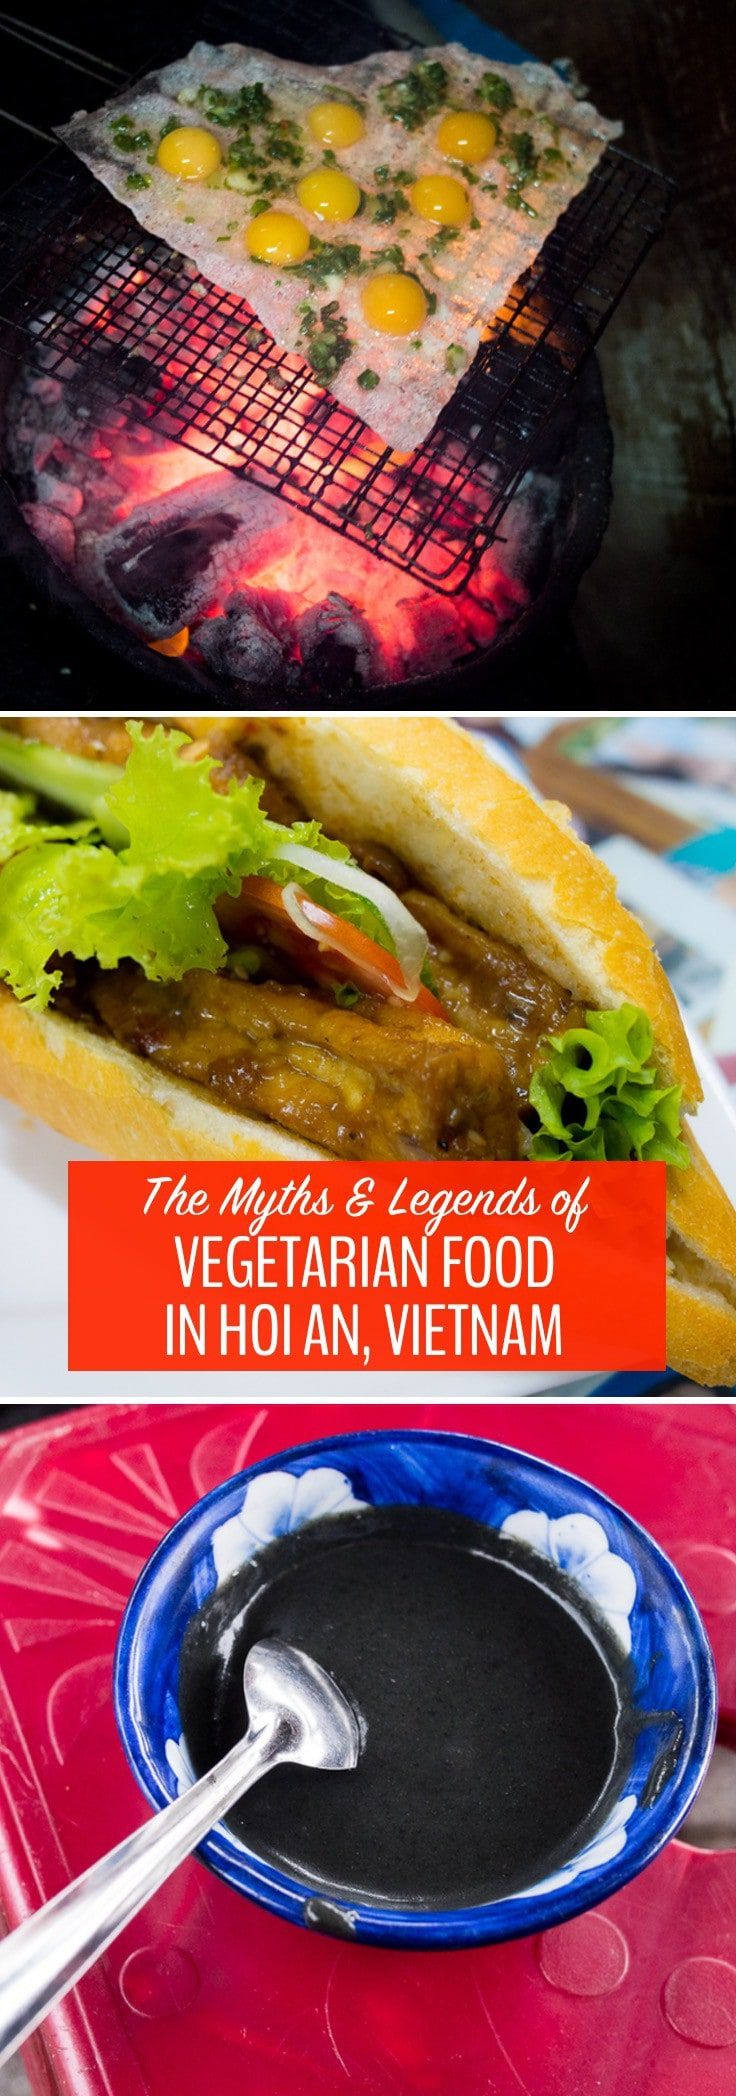 There is a huge selection of vegetarian food in Hoi An, Vietnam. Even though I'd thought I had sampled it all after a week in the city, this Hoi An Food Tour introduced me to new veggie delights. Check it out before you go to Vietnam.